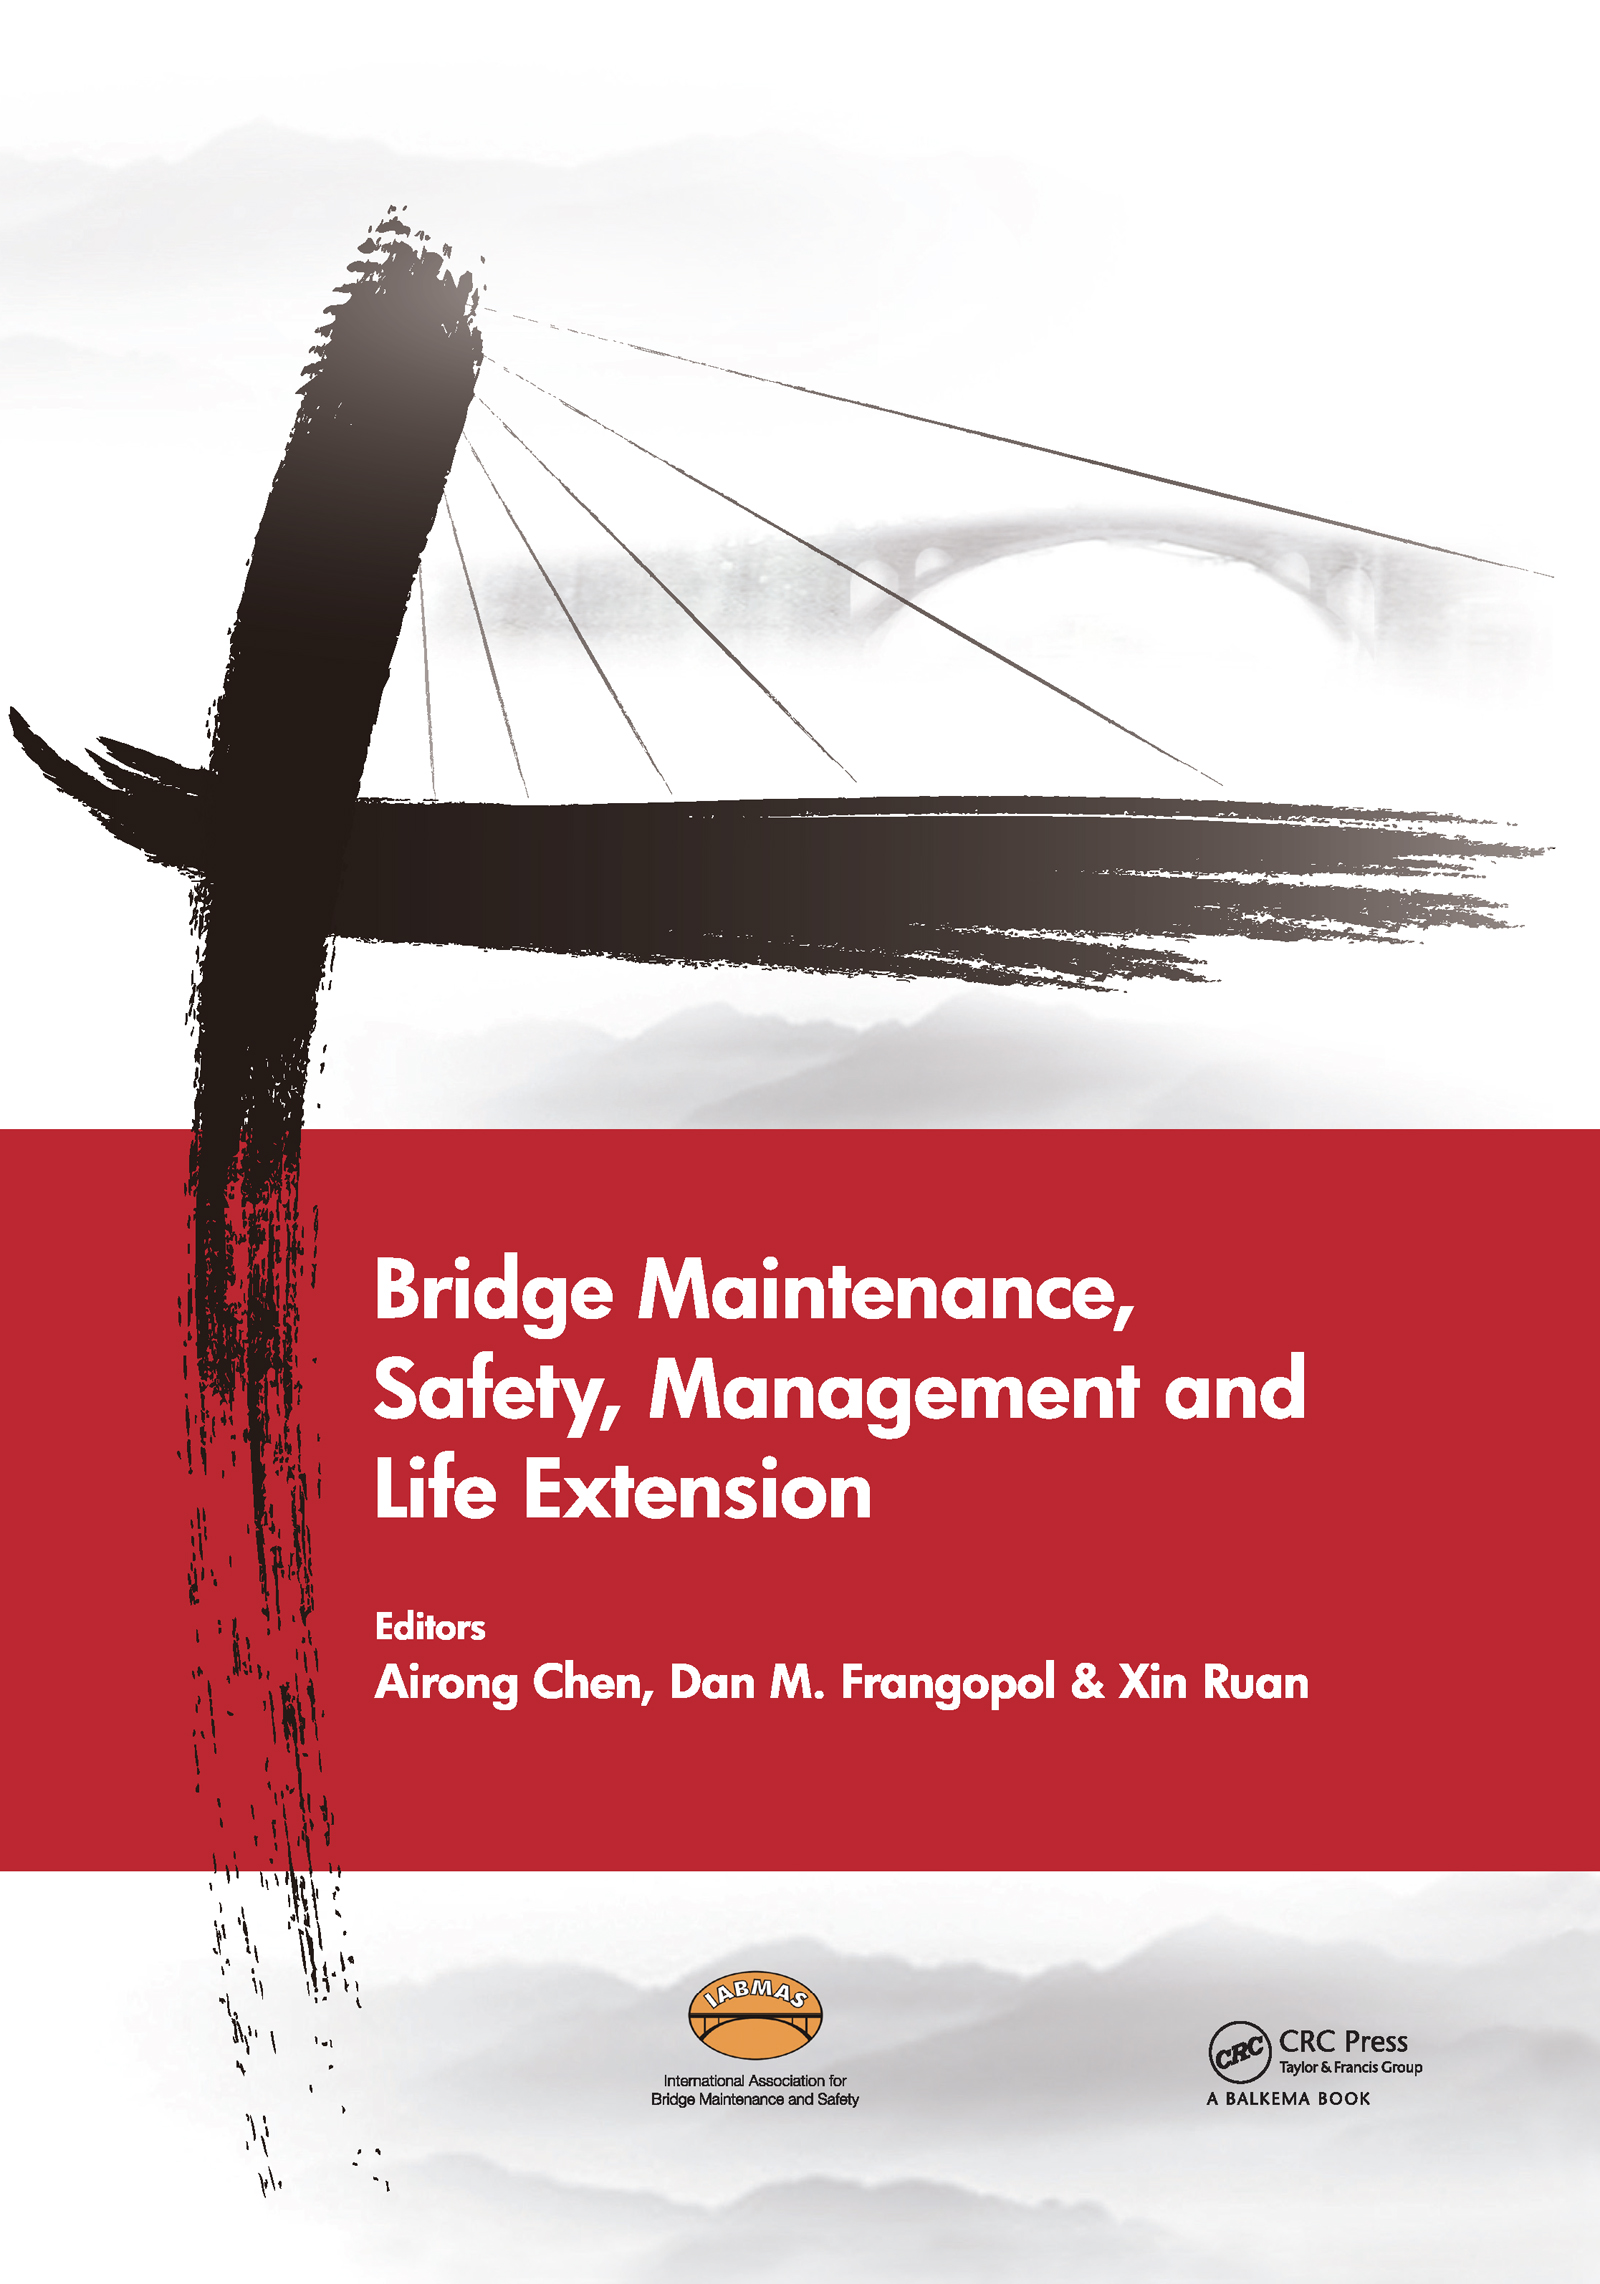 Bridge Maintenance, Safety, Management and Life Extension: 1st Edition (Pack - Book and CD) book cover